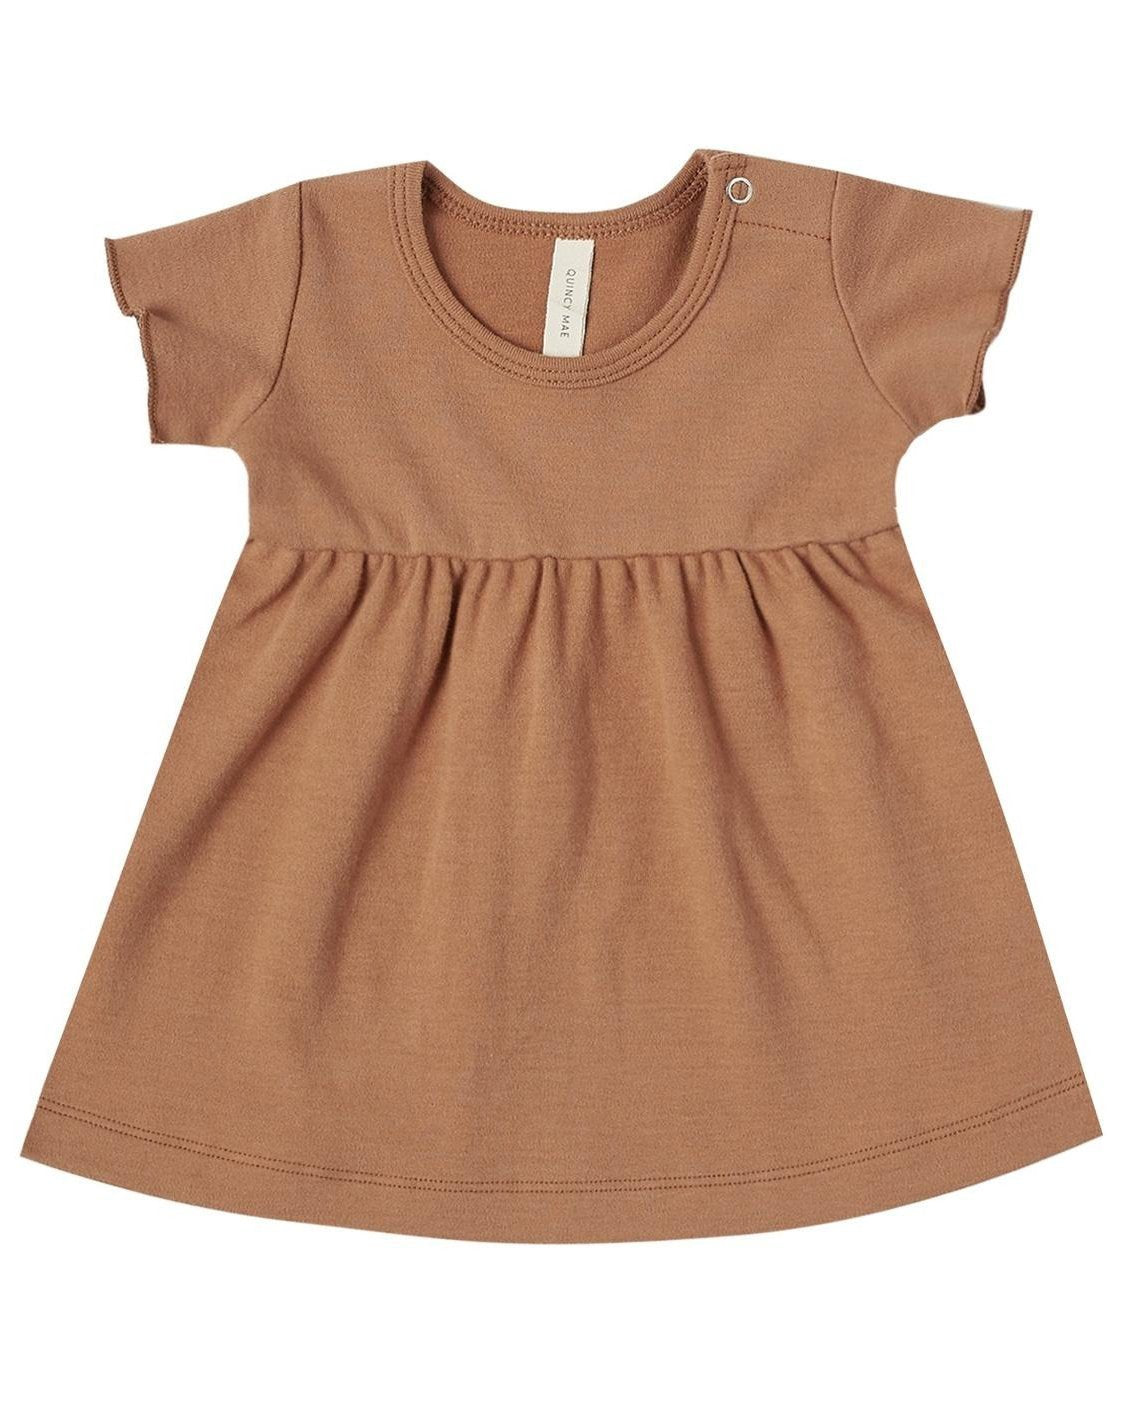 Little quincy mae baby girl short sleeve baby dress in rust